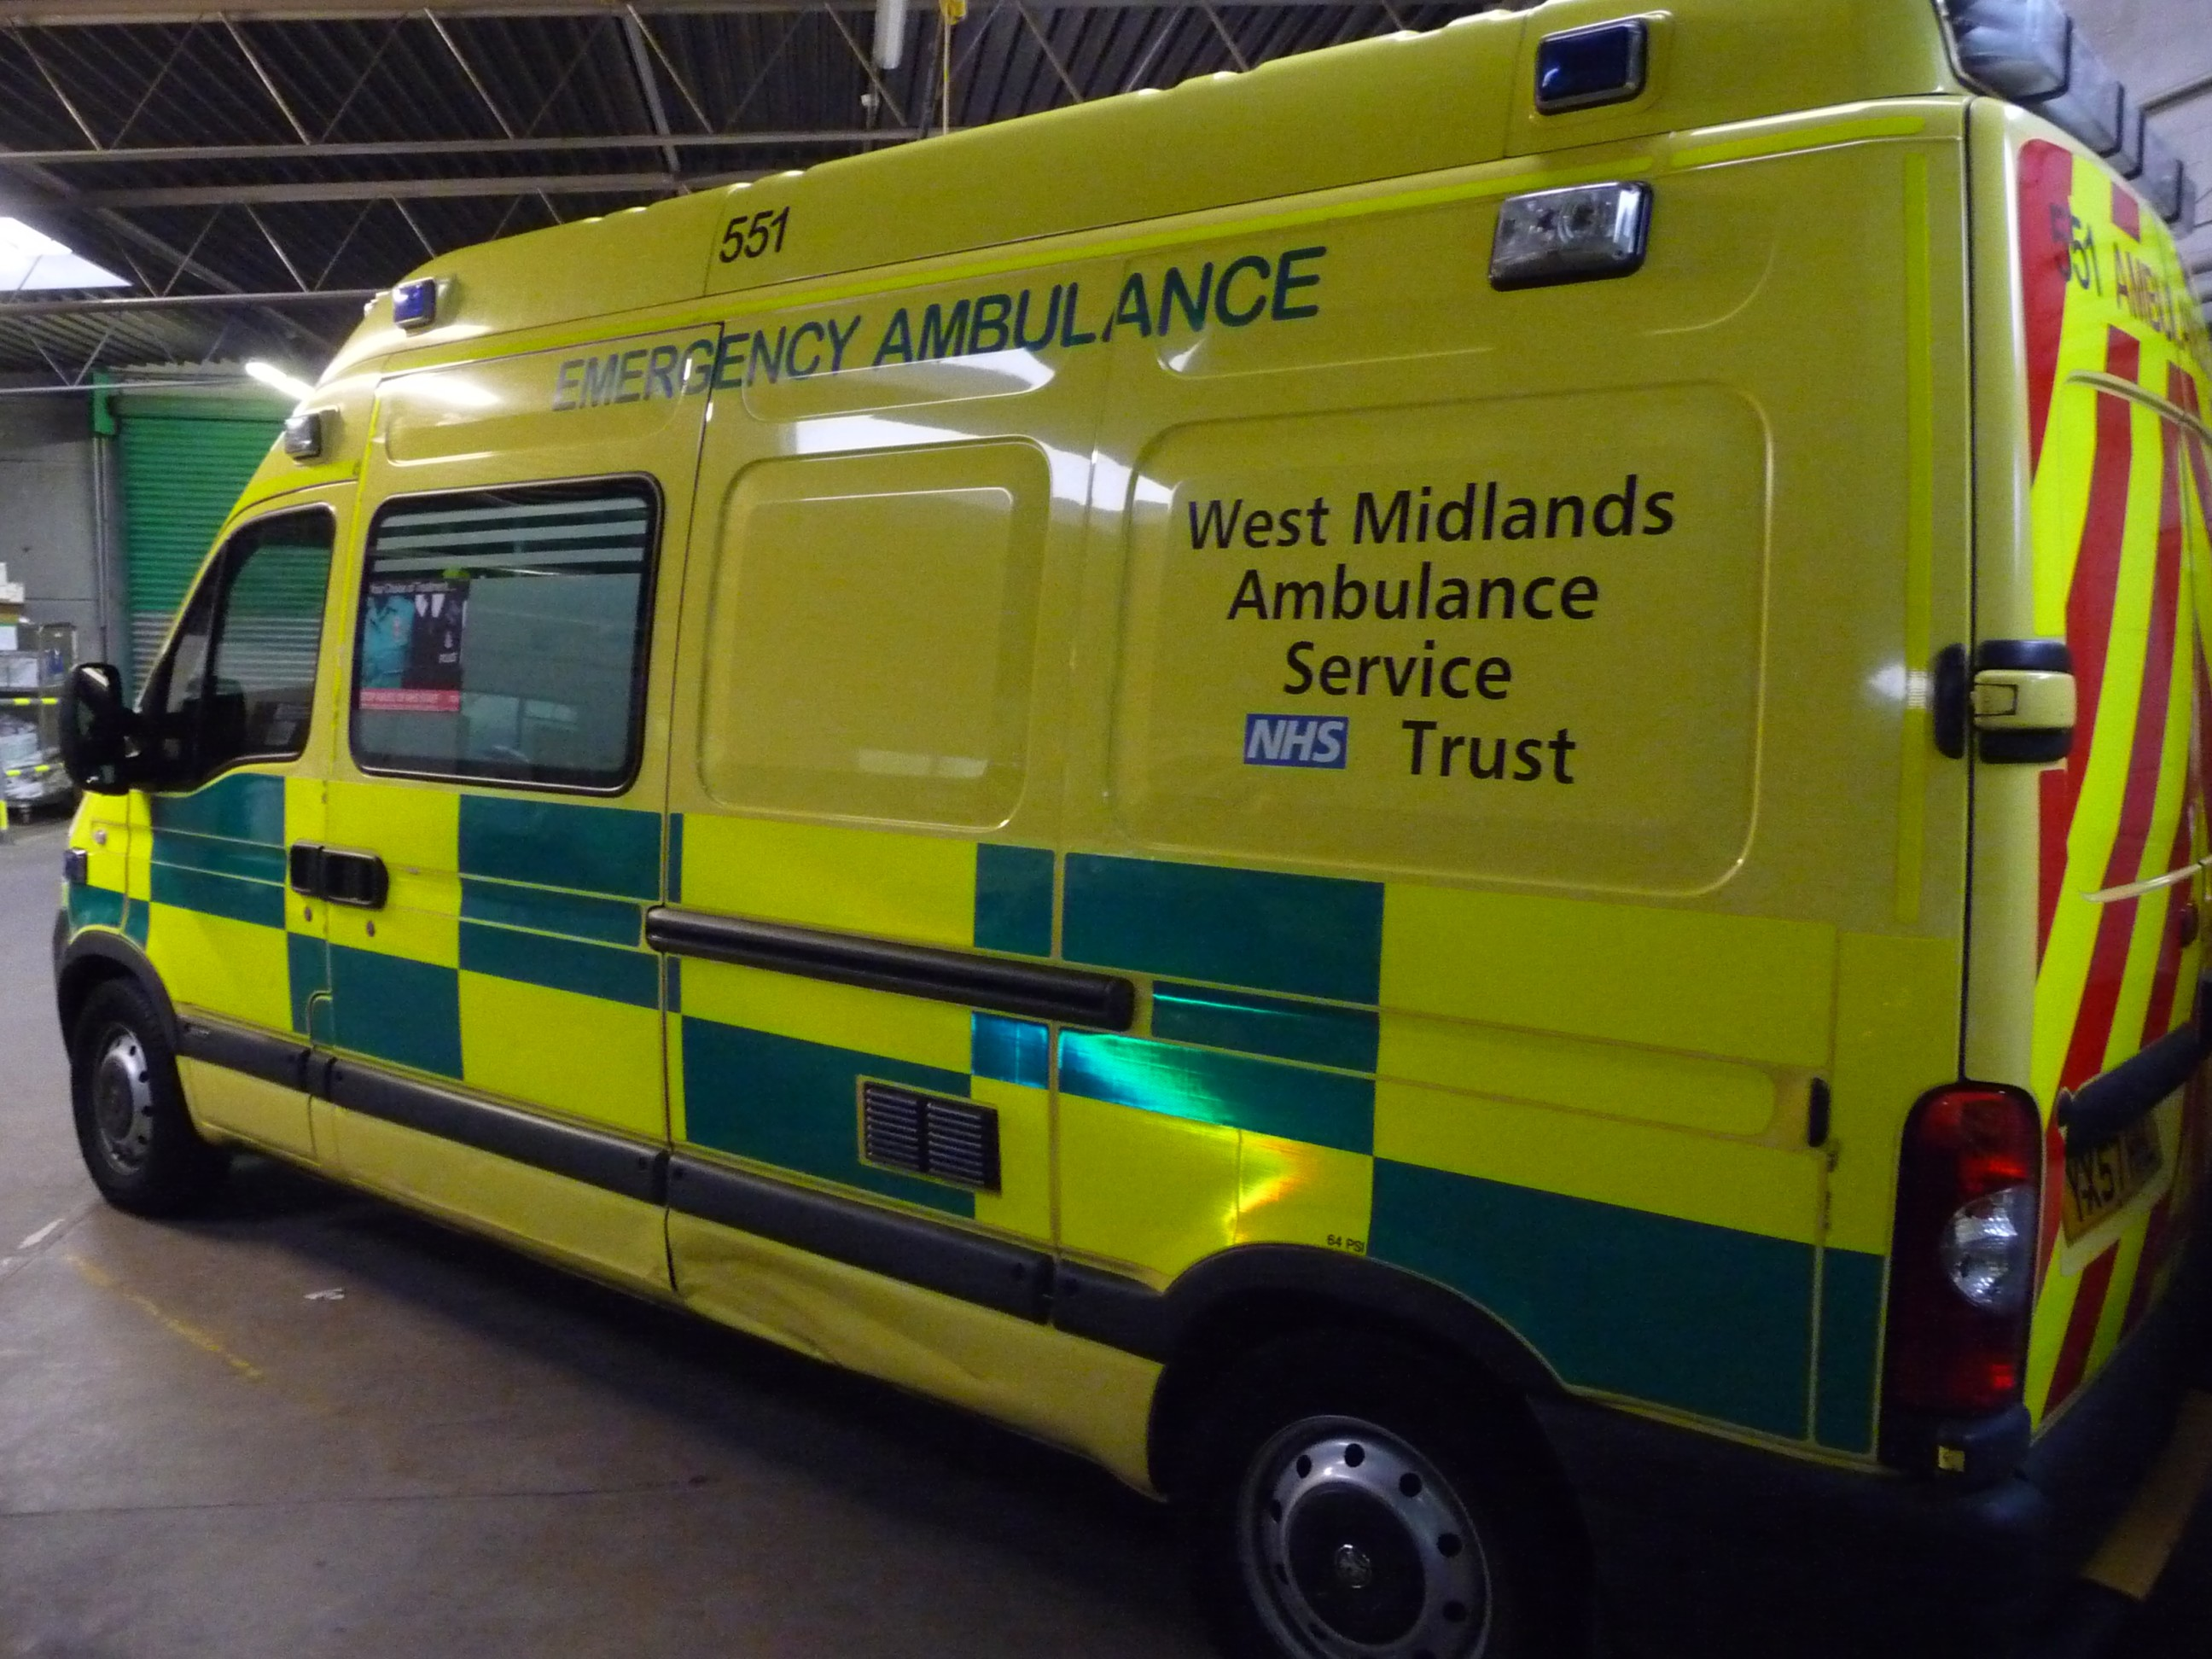 Ambulance des West Midlands